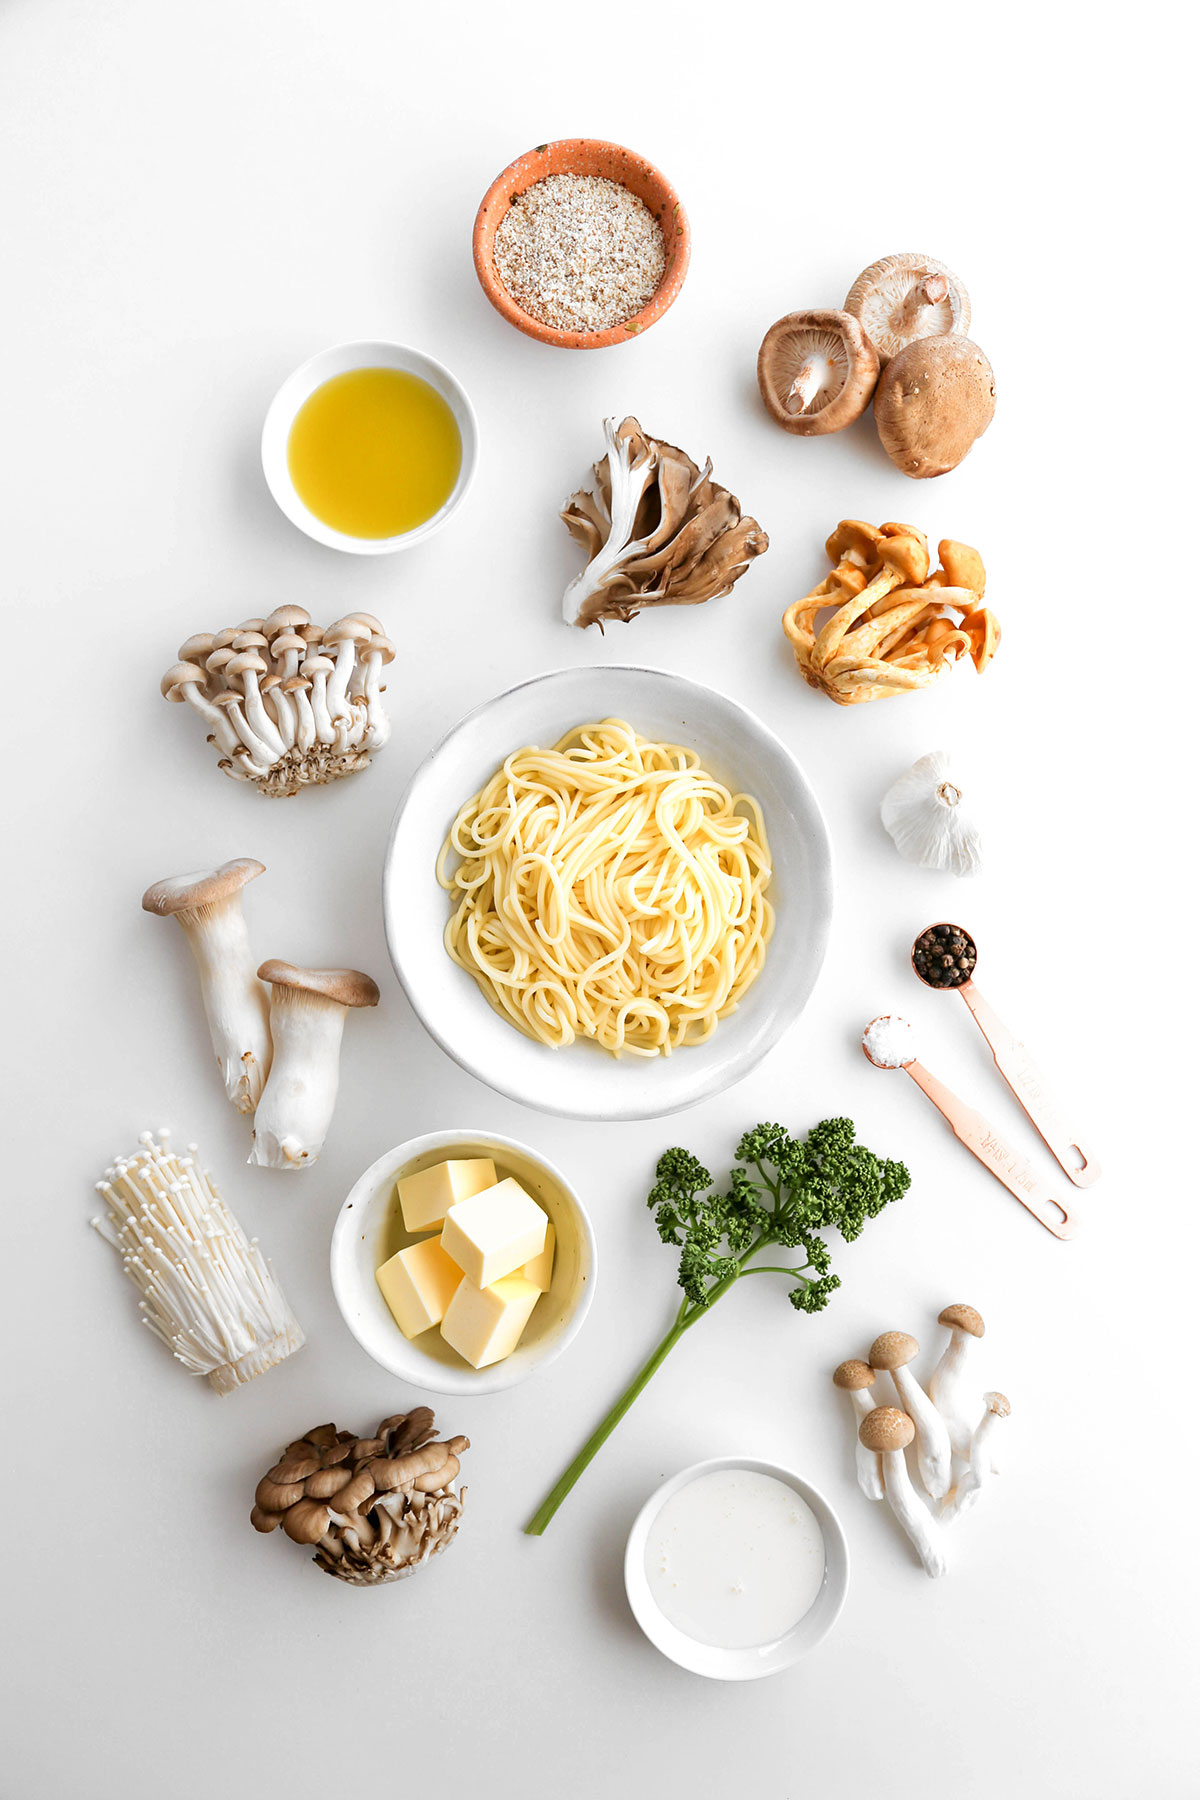 Mushroom pasta for keto and low carb. Easy recipe with shirataki noodles.